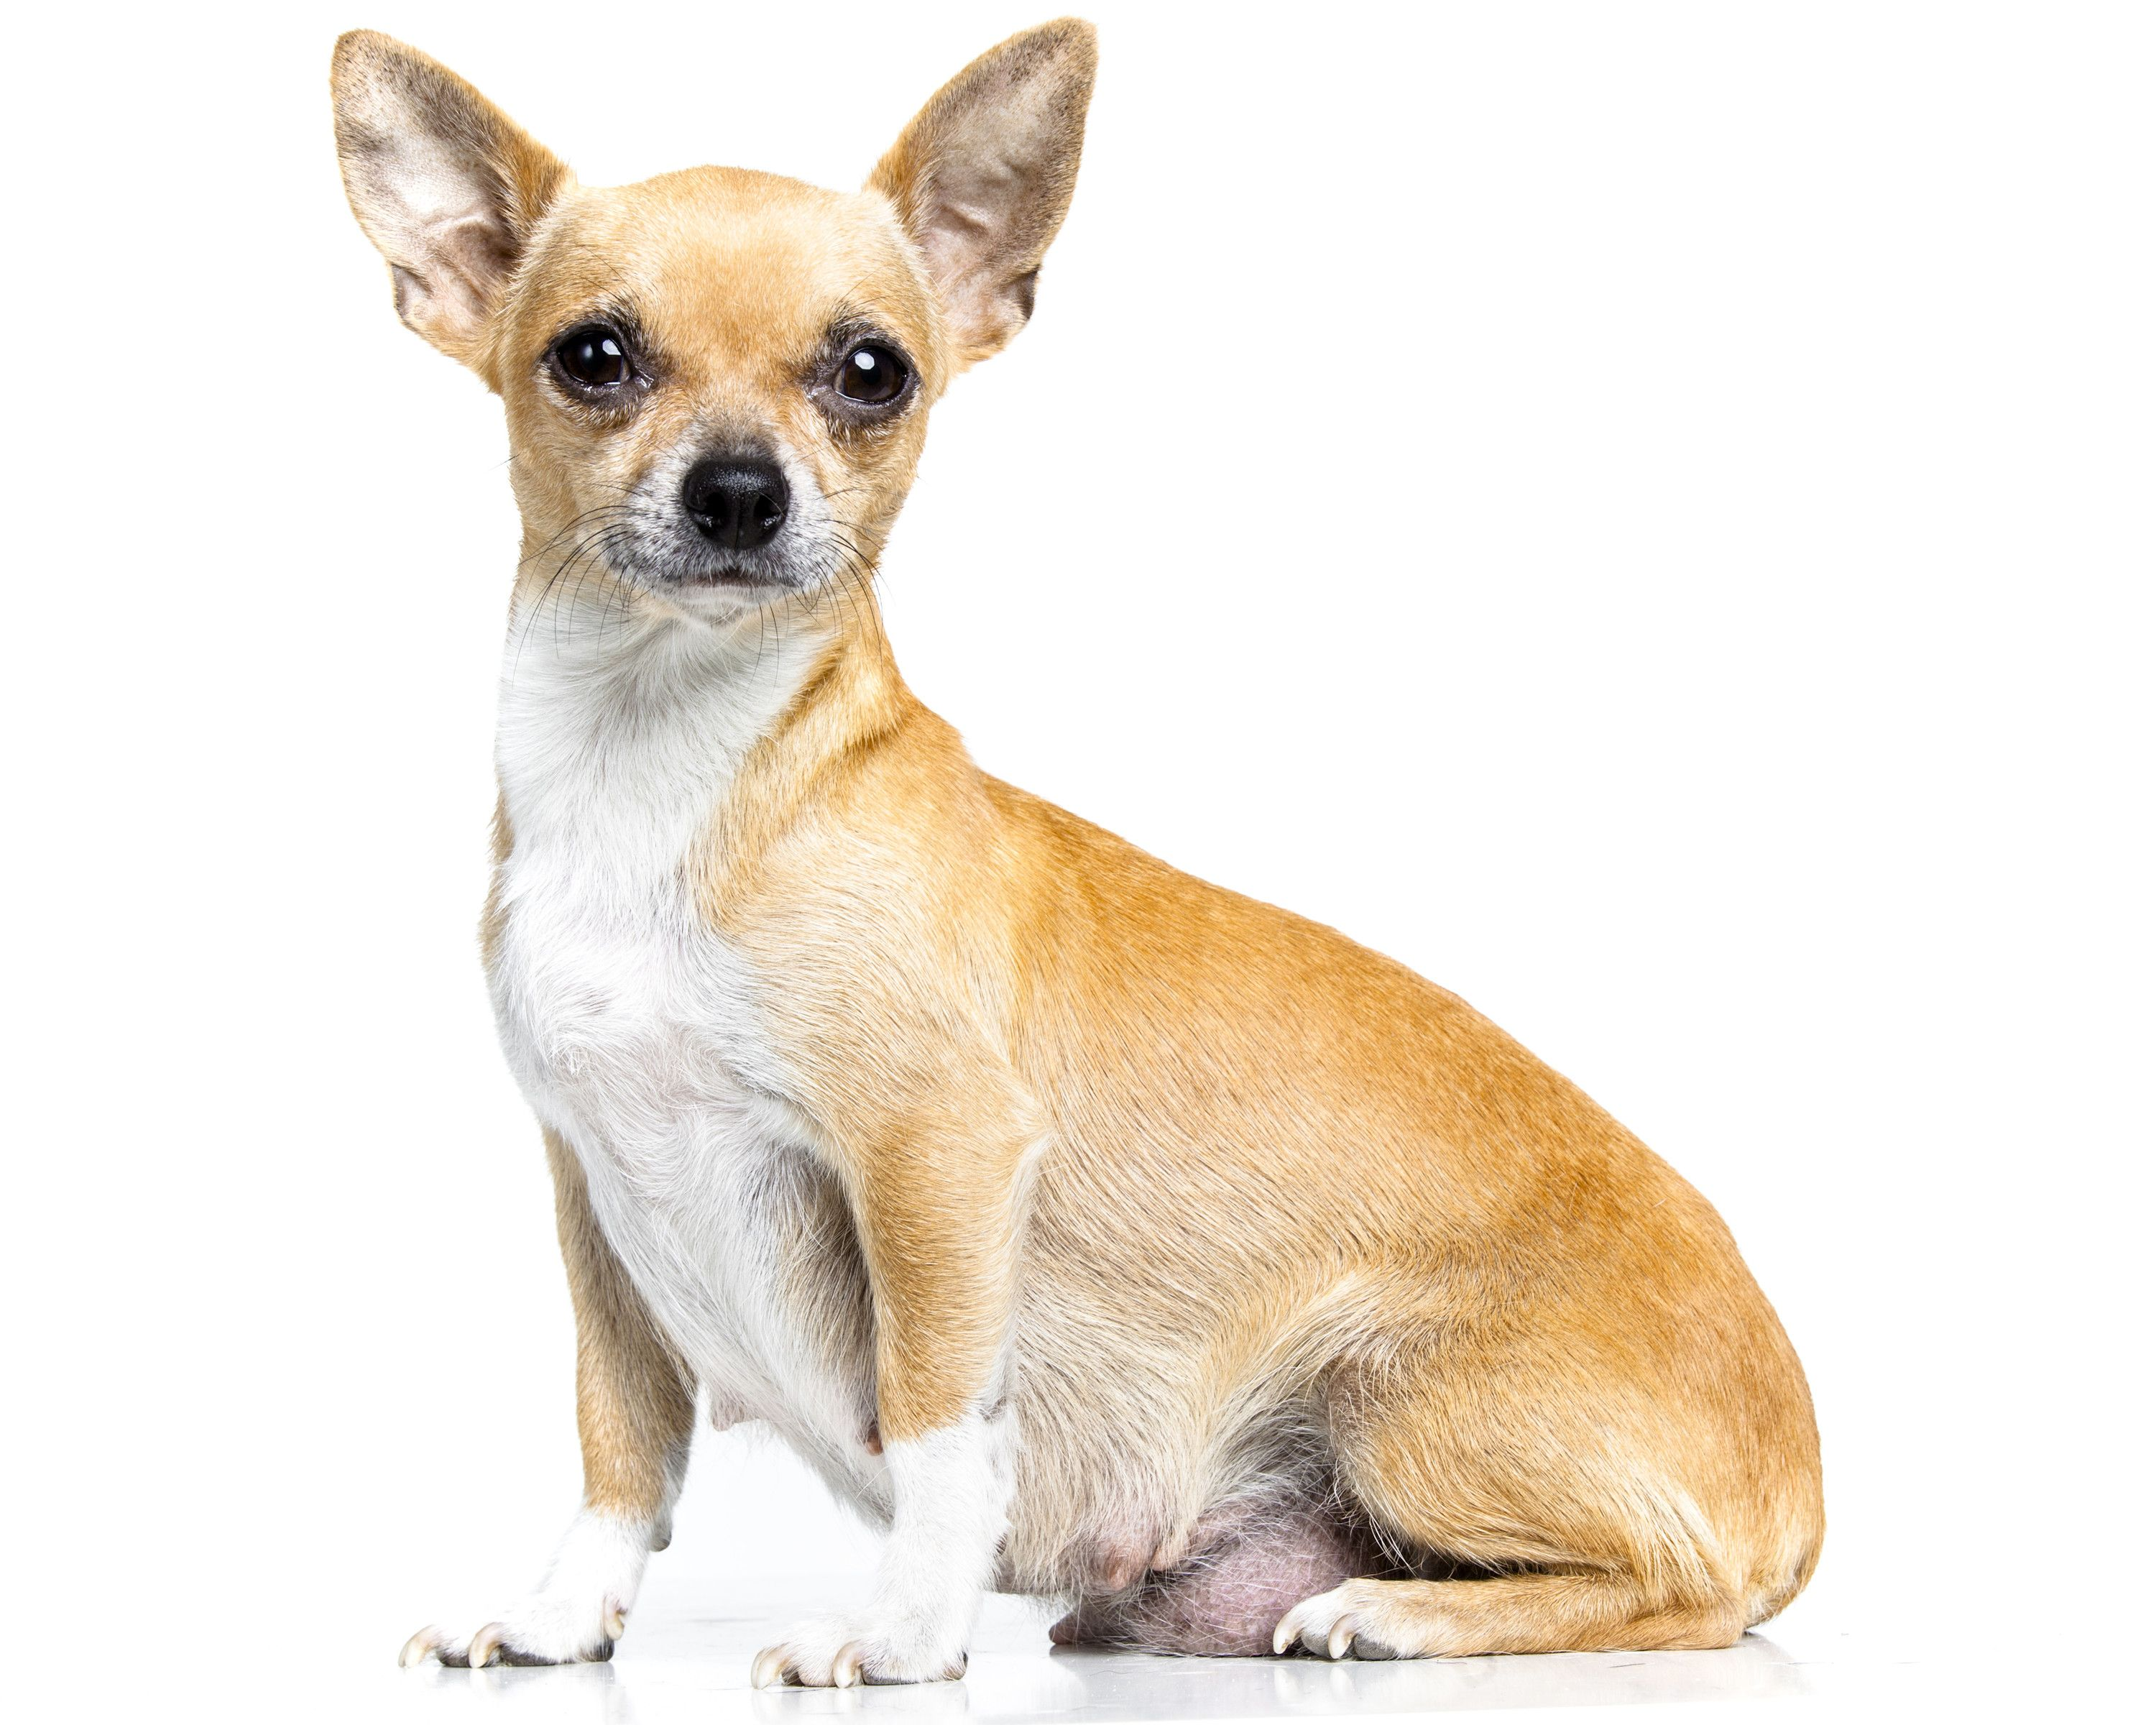 How badly do we need to know pregnant dog chihuahua